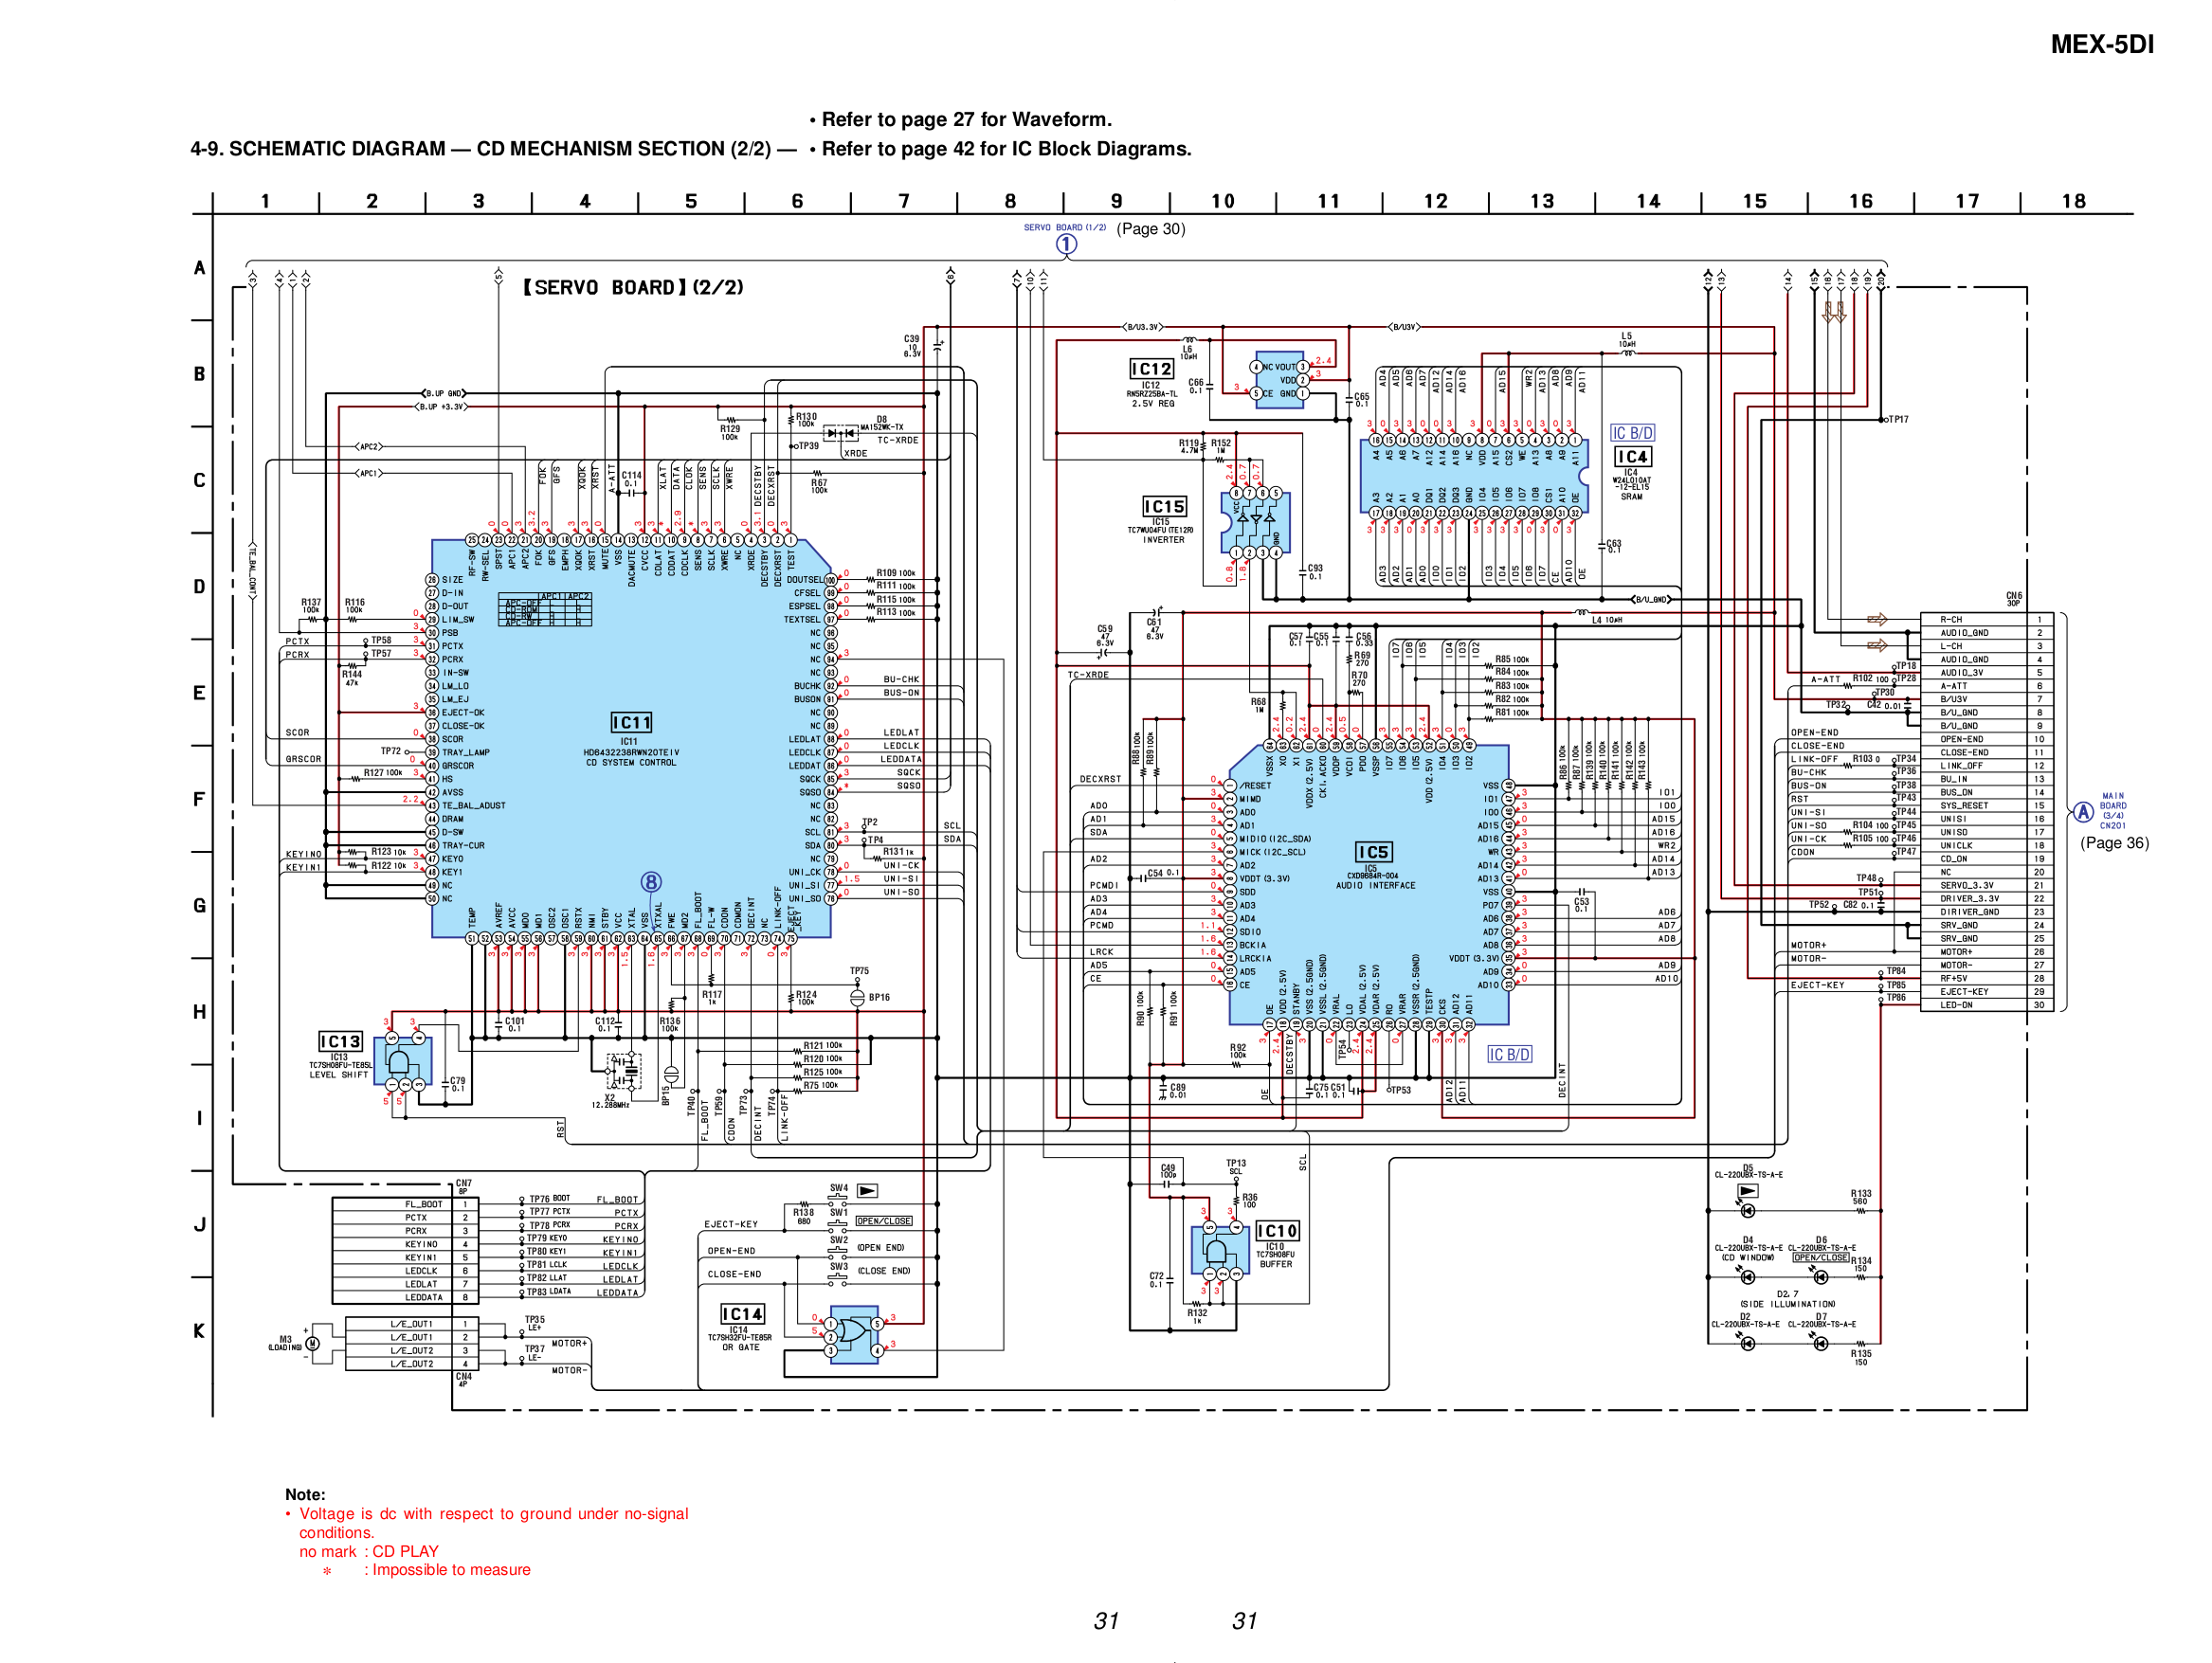 Wiring Harness Sony Mex 5di Explained Diagrams N5100bt Pdf Manual For Car Receiver